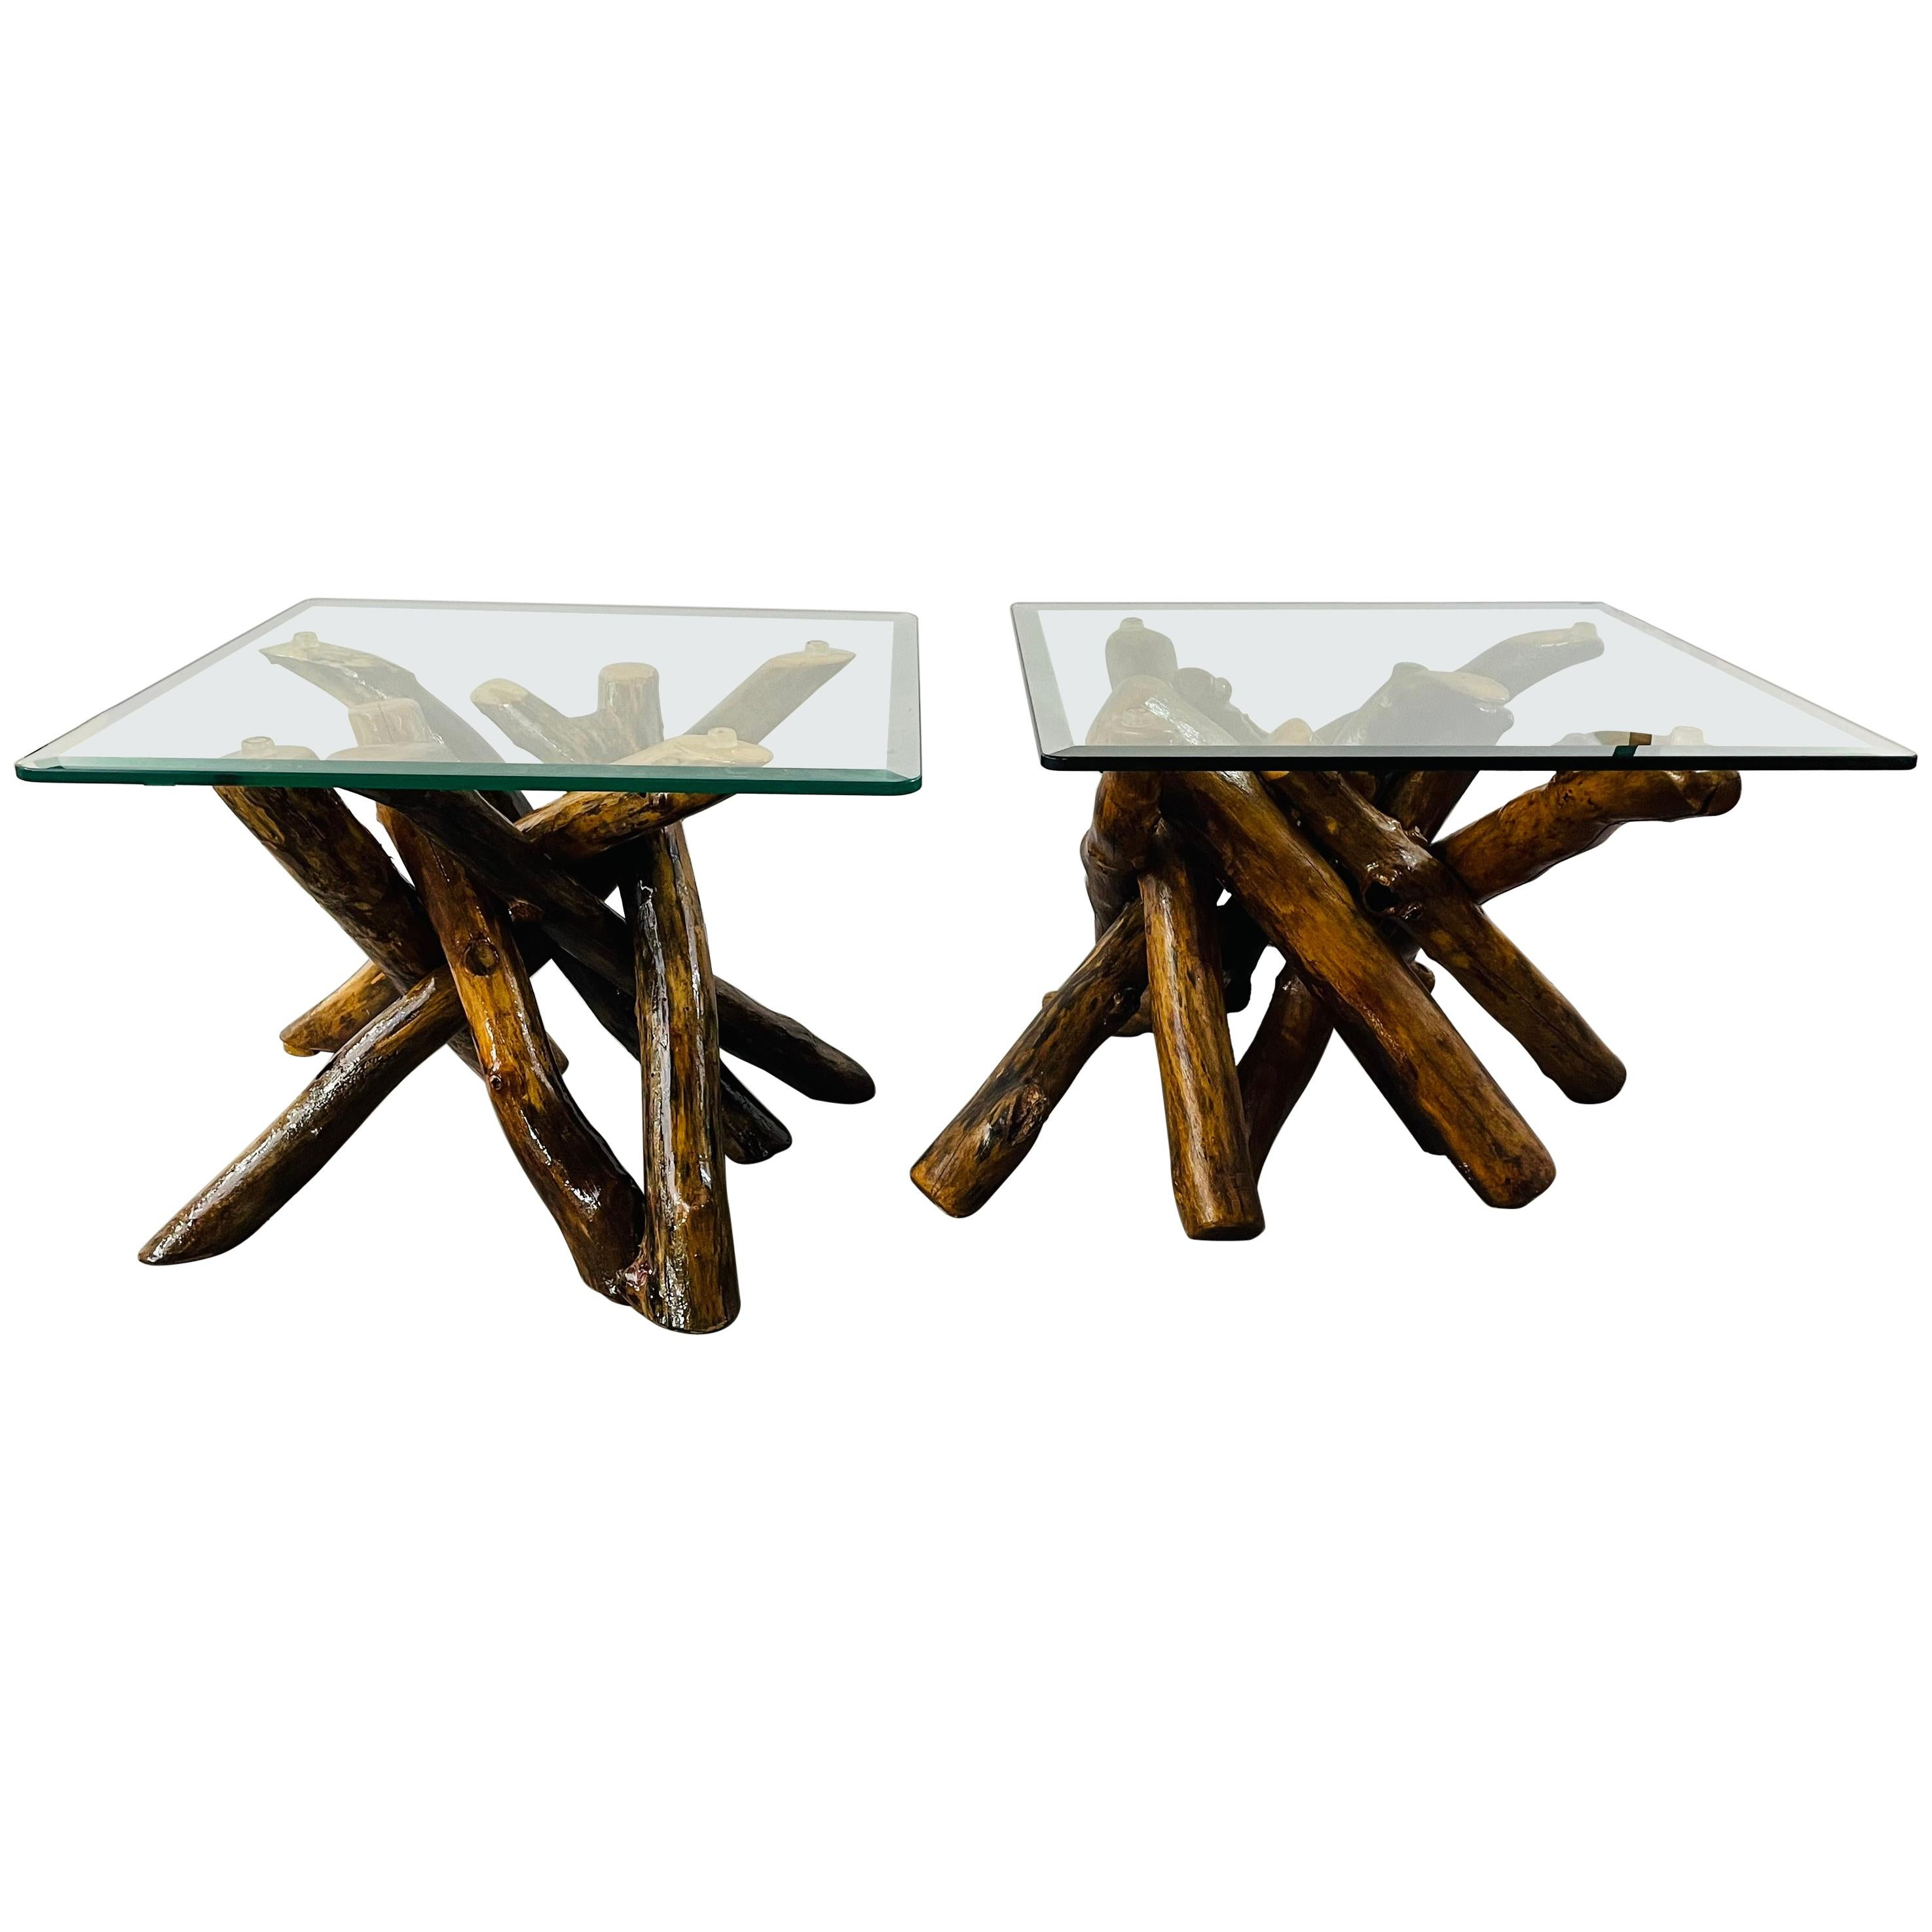 Rustic Organic Design Maple Log Wood Side or End Table with Glass Top, a Pair